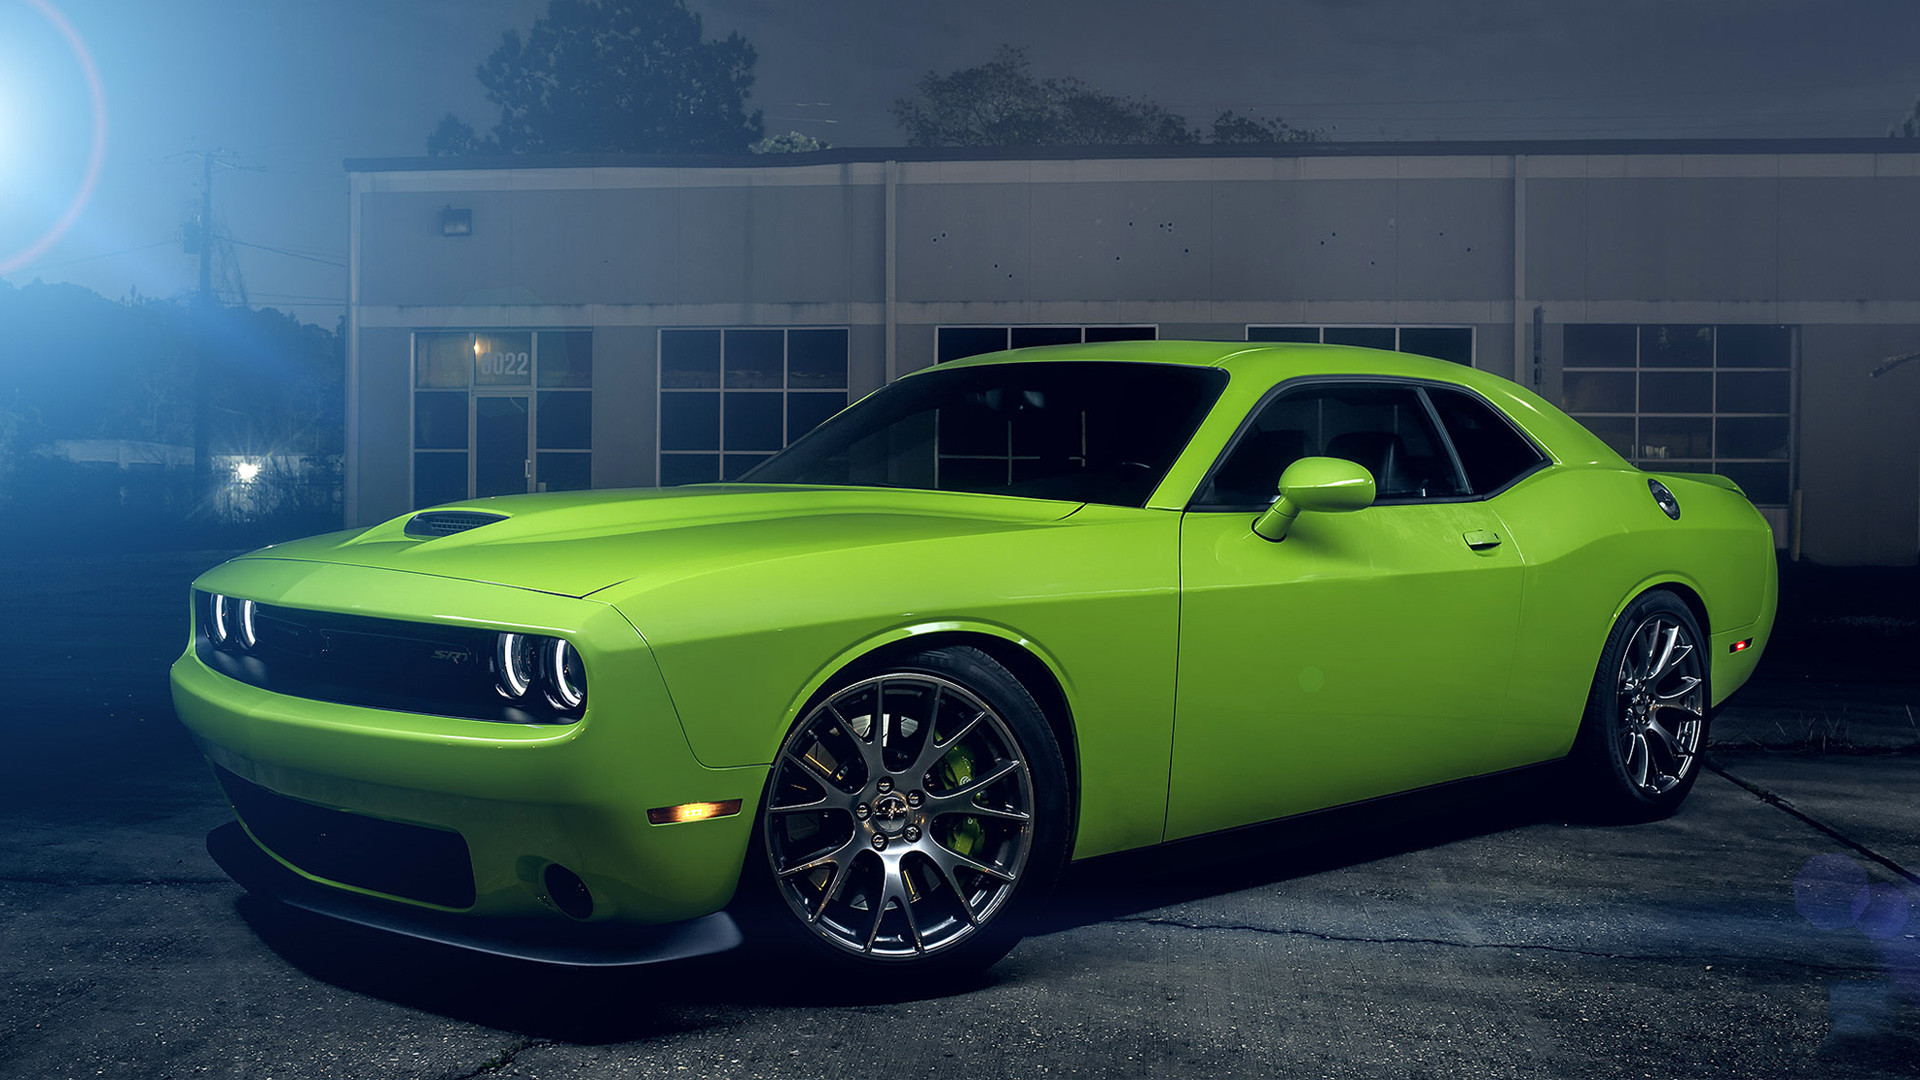 1920x1080 Dodge Challenger Srt Hellcat Green Wallpaper Hd Car Wallpapers